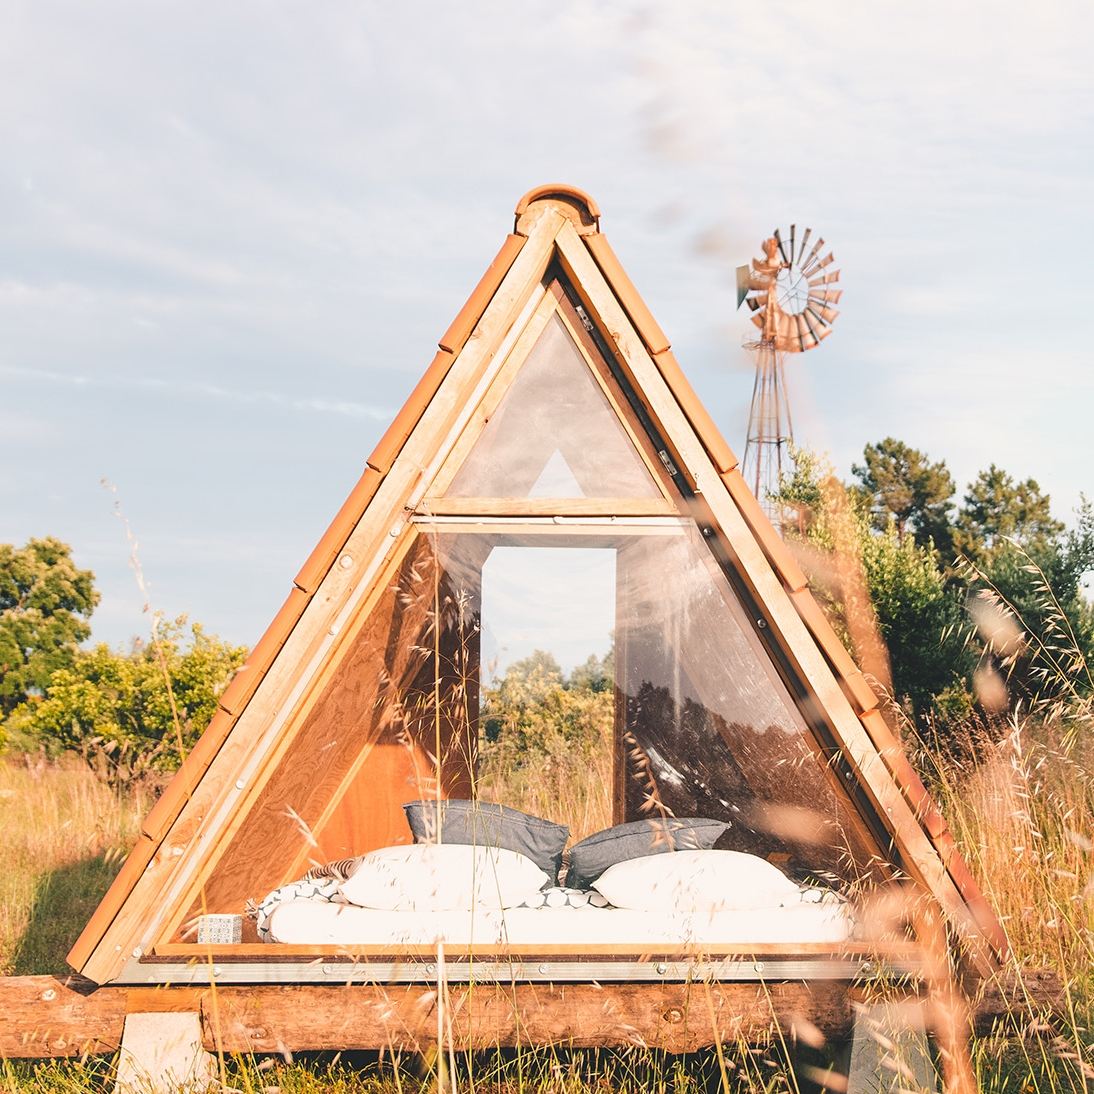 A rural escape for the solo explorer - Whether you are interested in coming to the farm to engage in deep work or escape urban overstimulation, the farm will allow you to reconnect with yourself, your work, and nature.